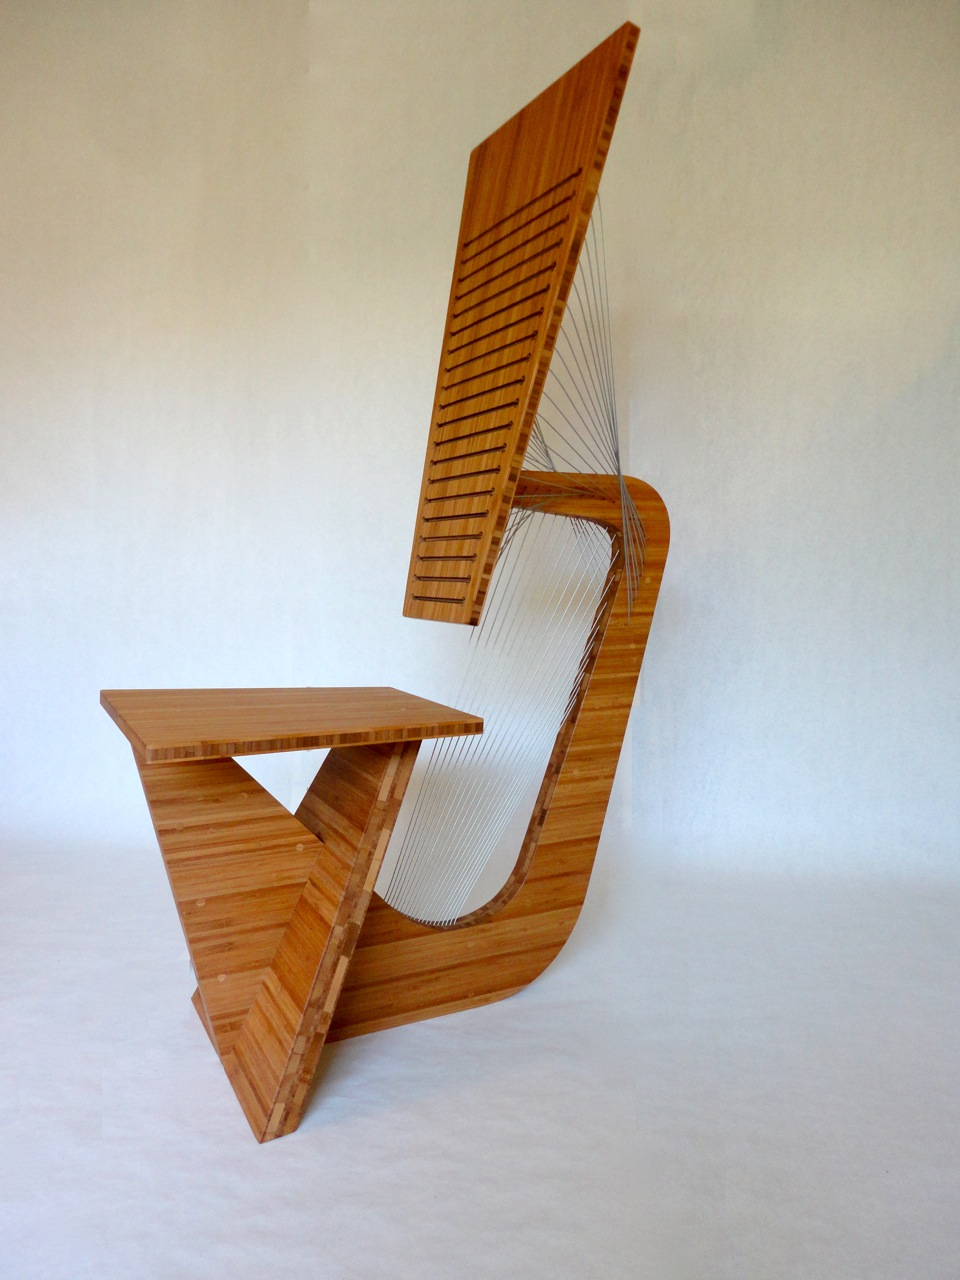 Sculptural Desk Chair